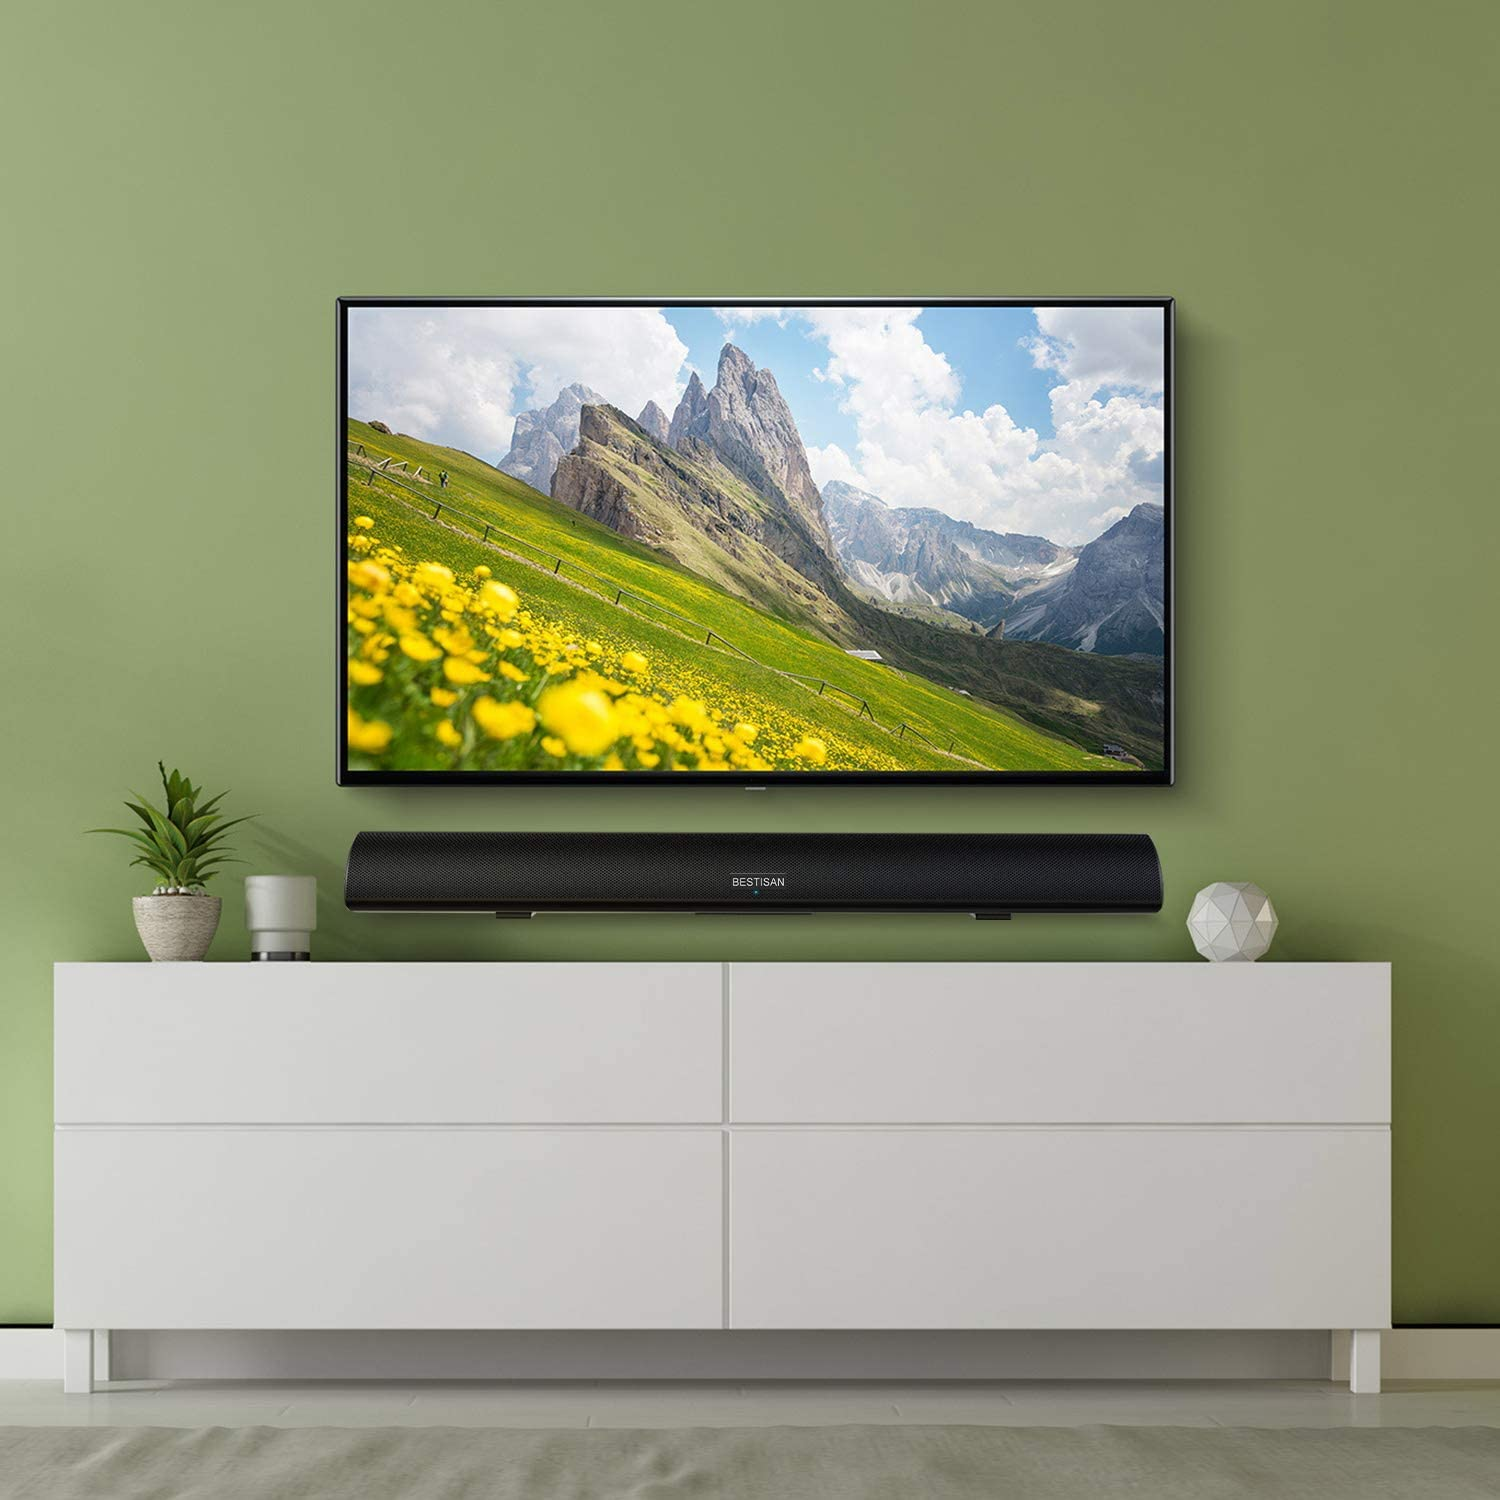 tv and BYL Bestisan S9920on wall